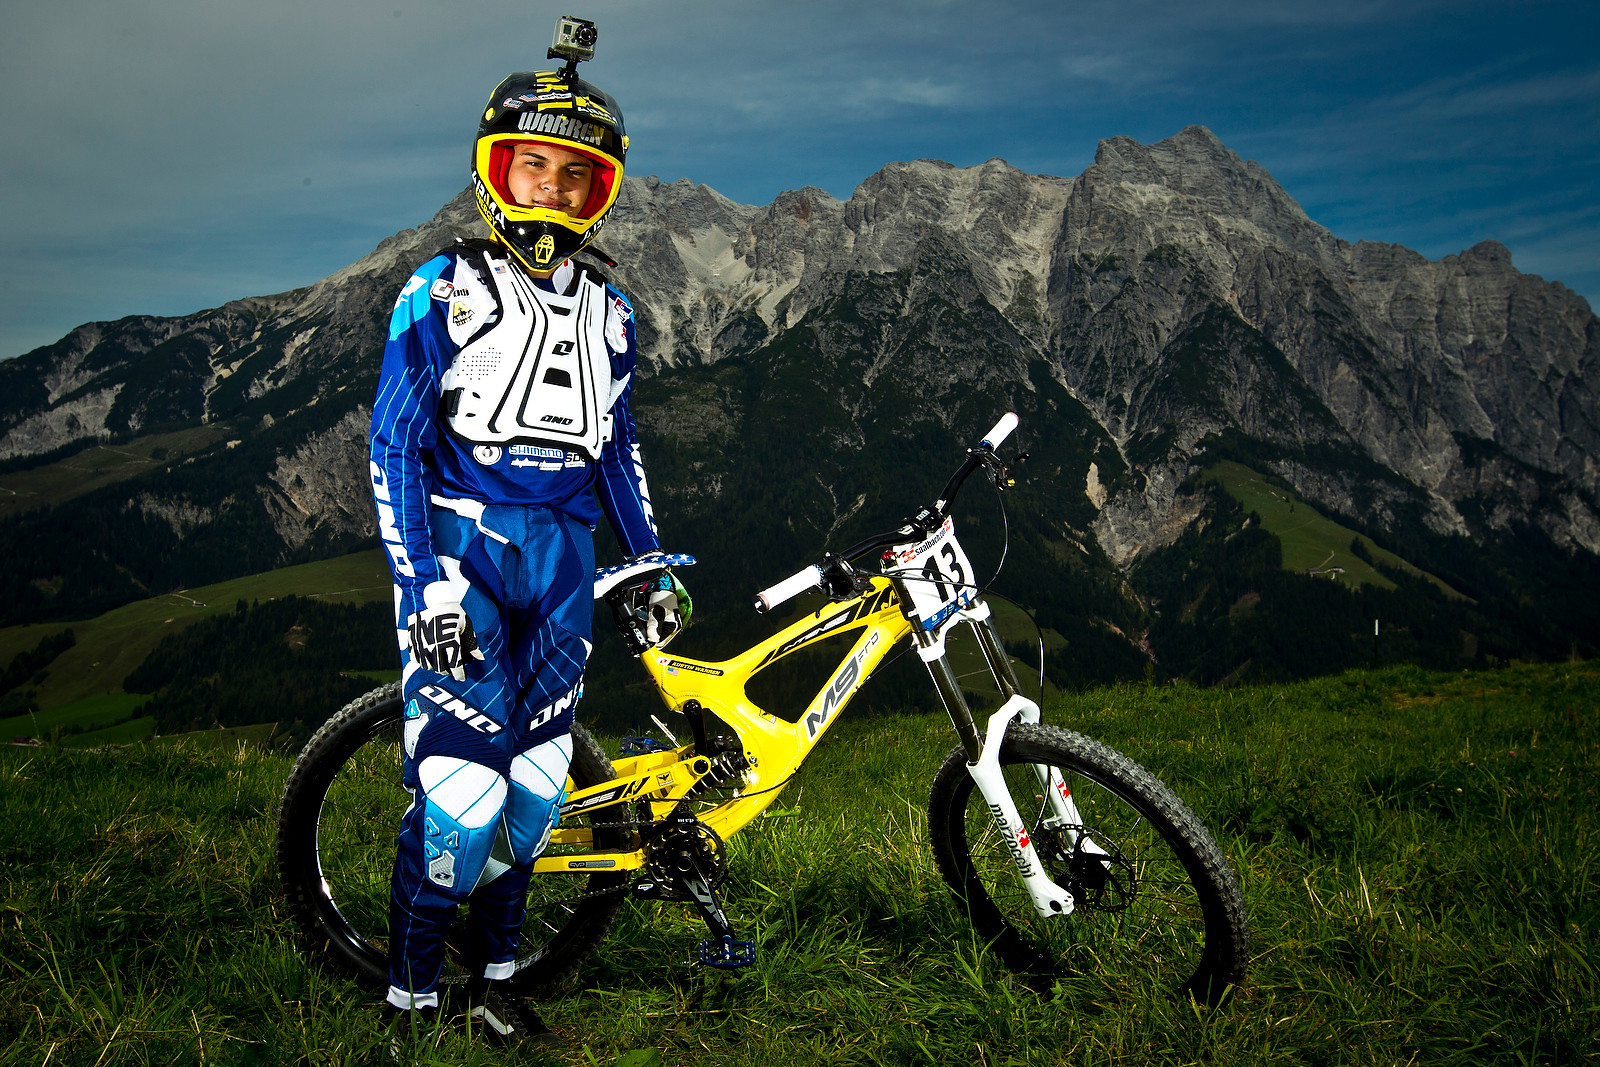 Austin Warren with his Intense M9 - World Championships Riders and Bikes - Mountain Biking Pictures - Vital MTB